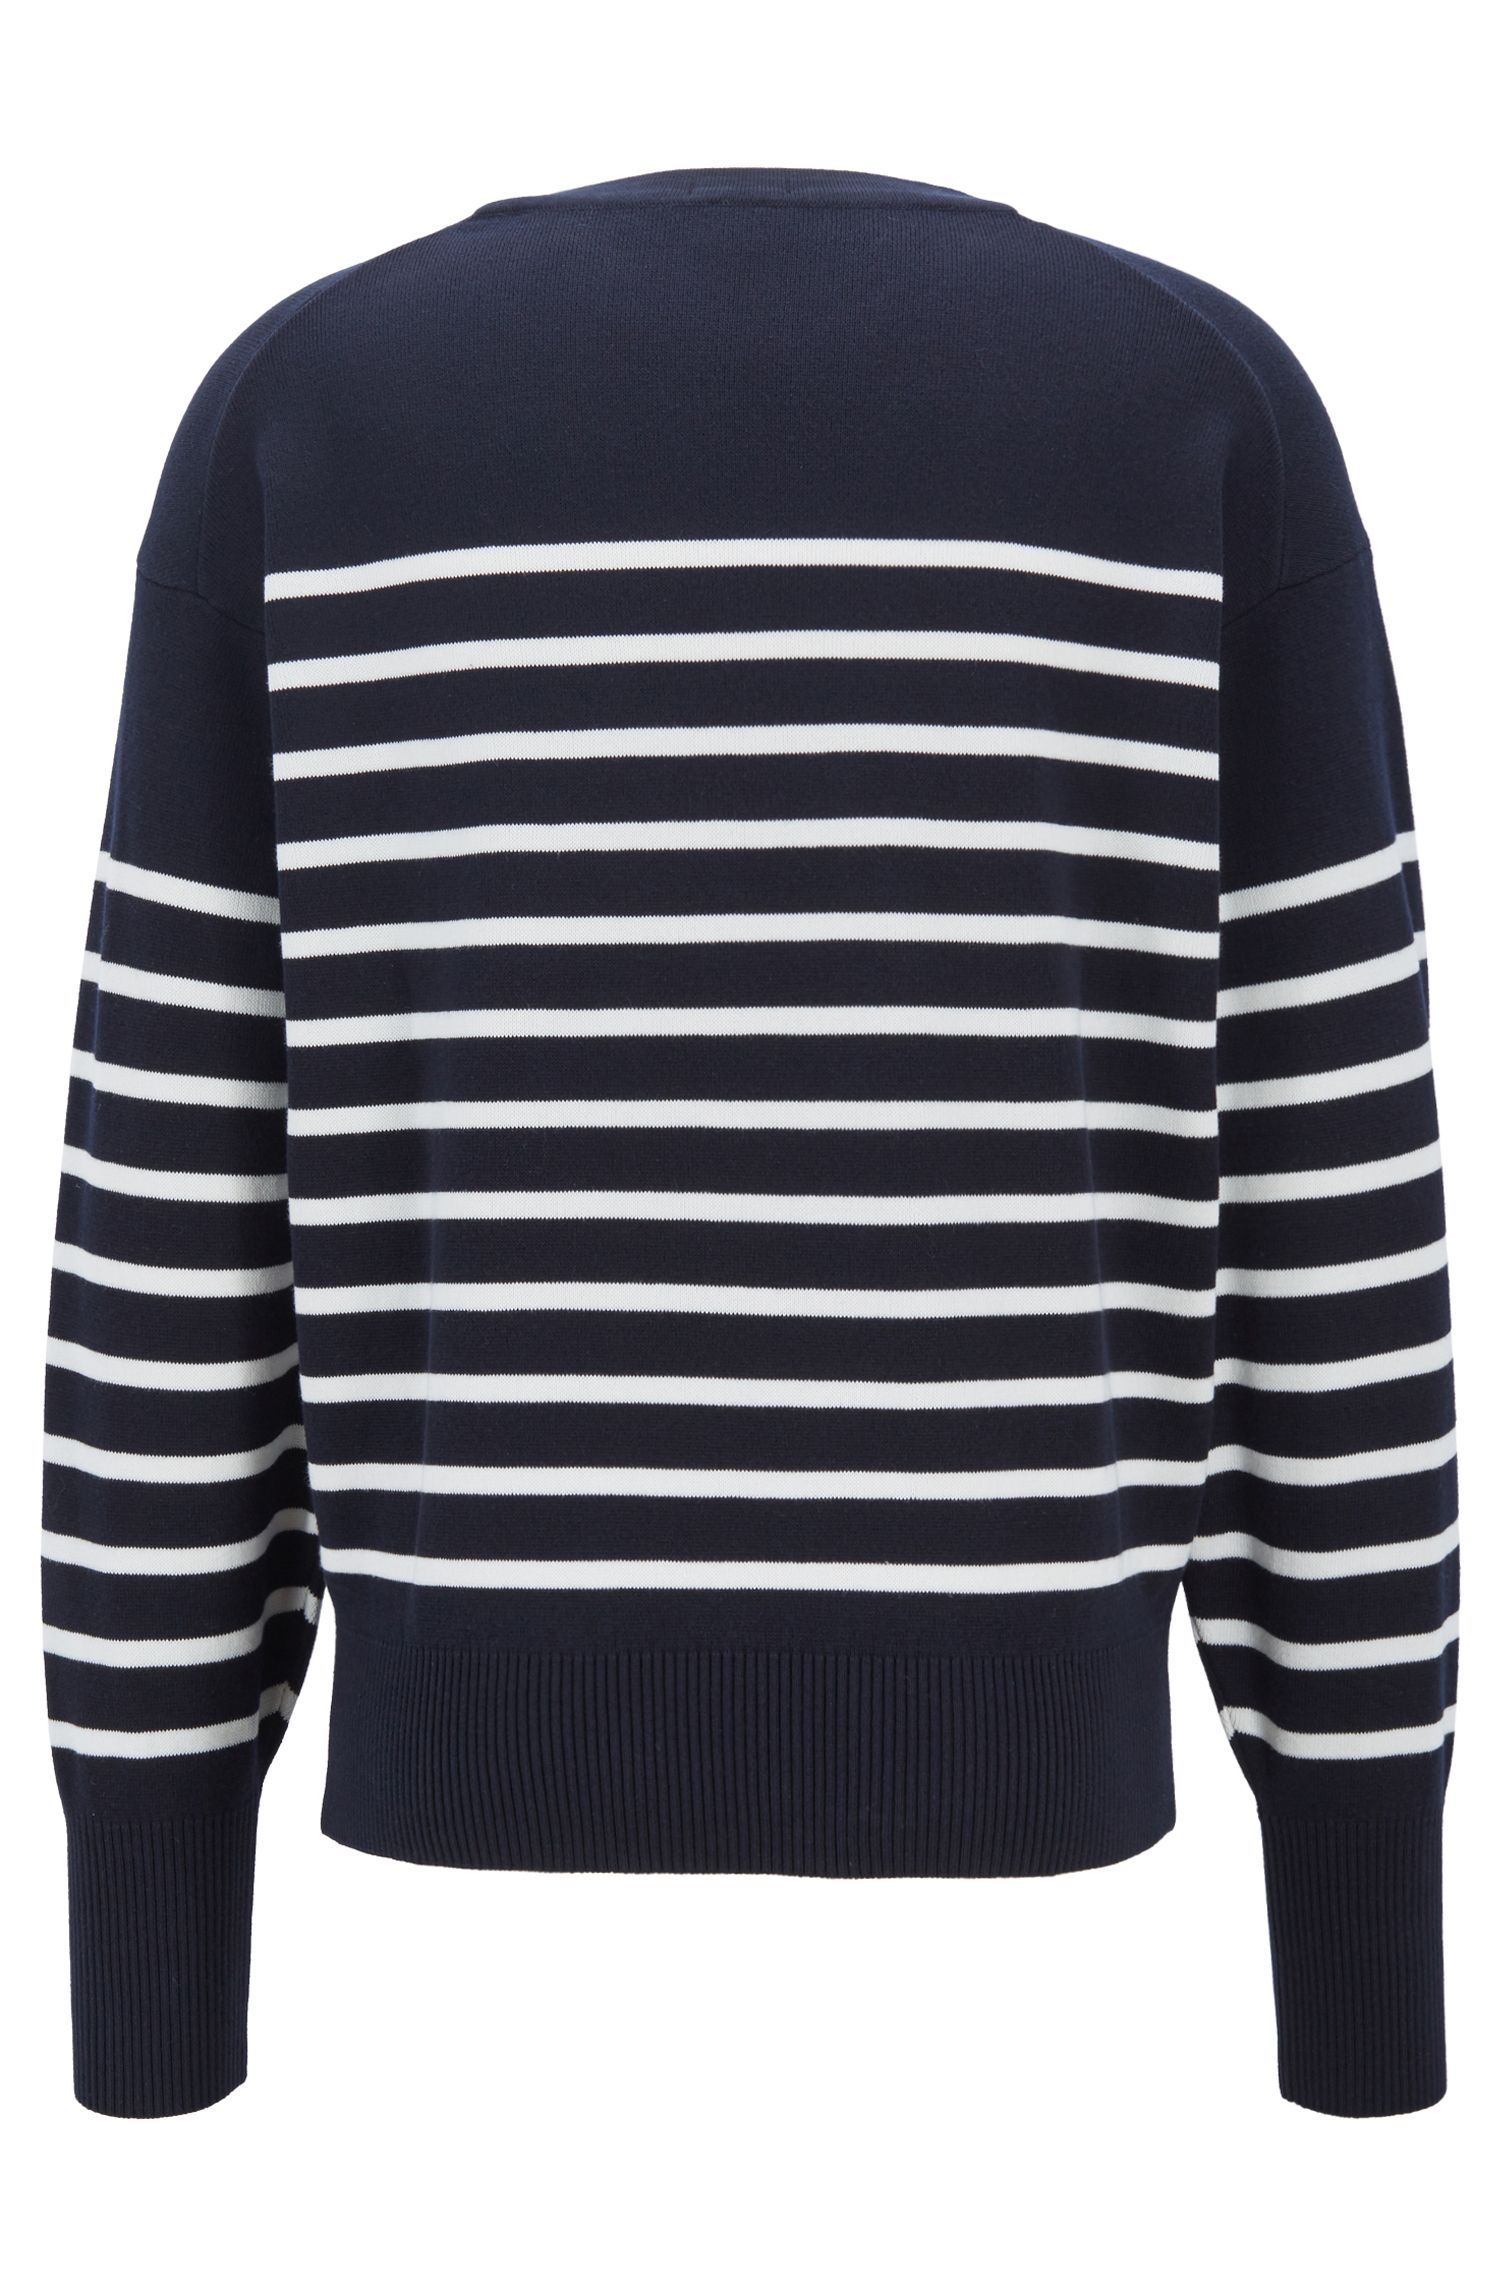 Striped cotton sweater with overlapping neckline, White